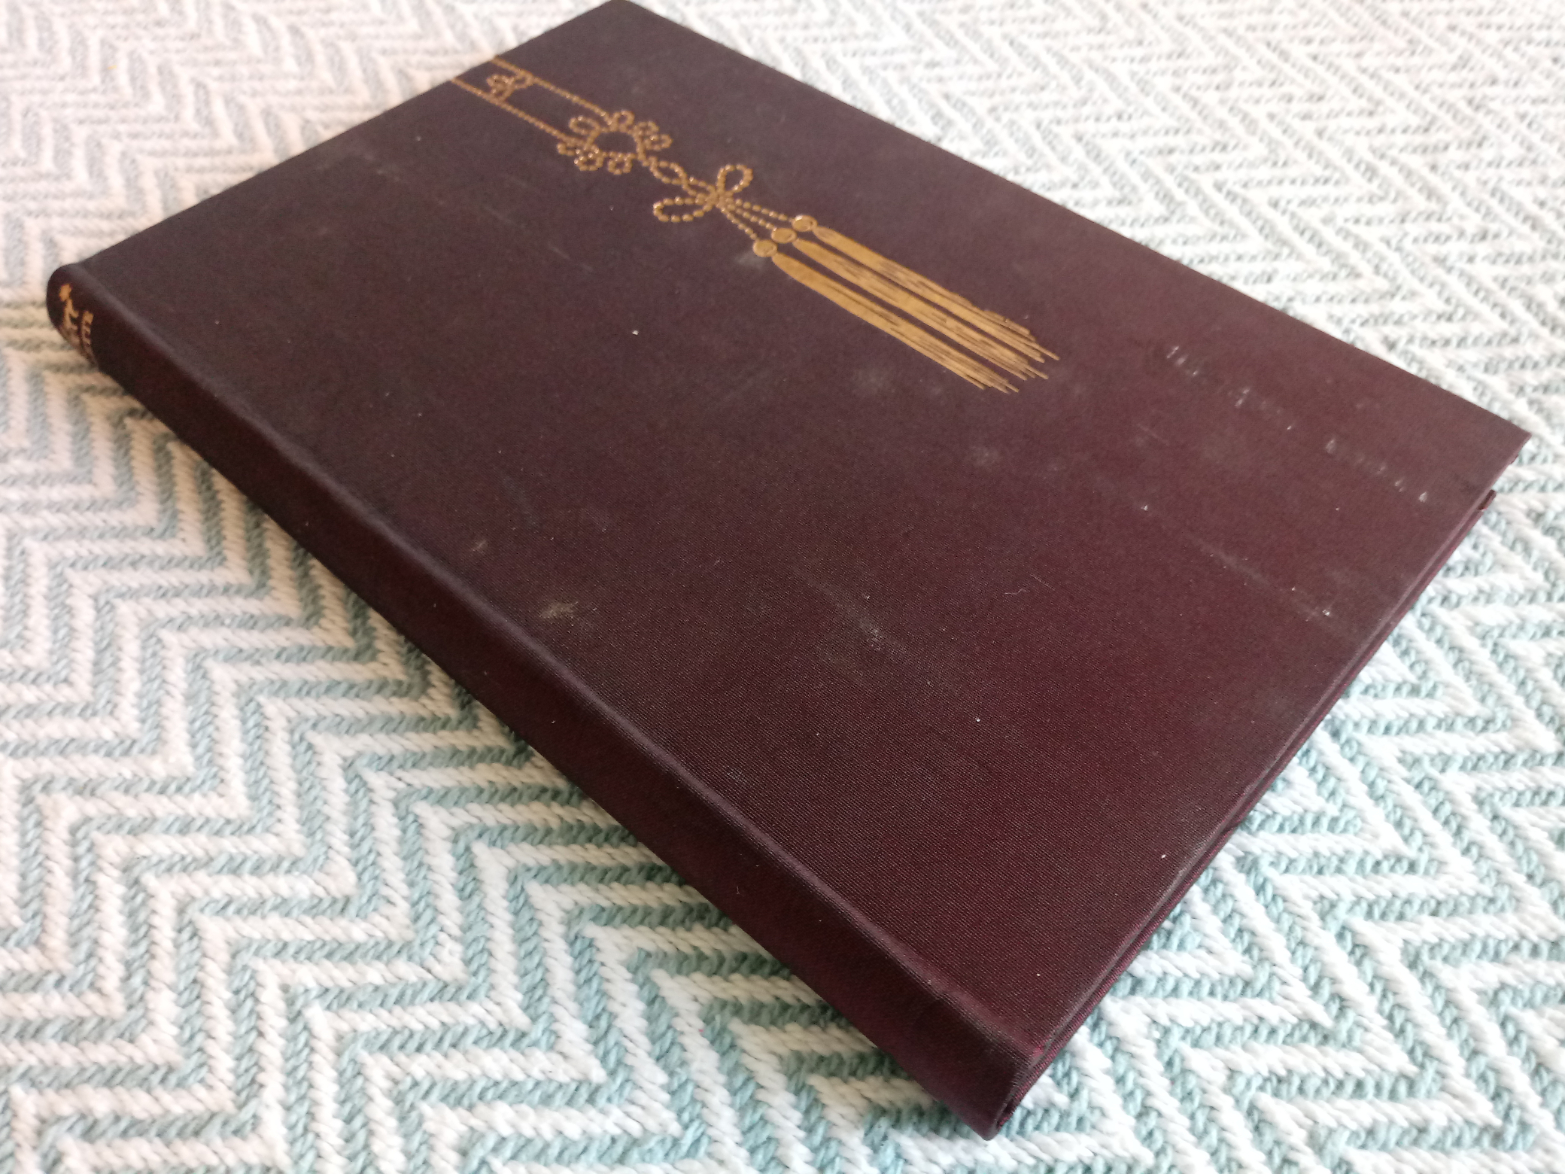 Cheri by Colette translated by Roger Senhouse hardback book 160 pages Published 1963 The Folio